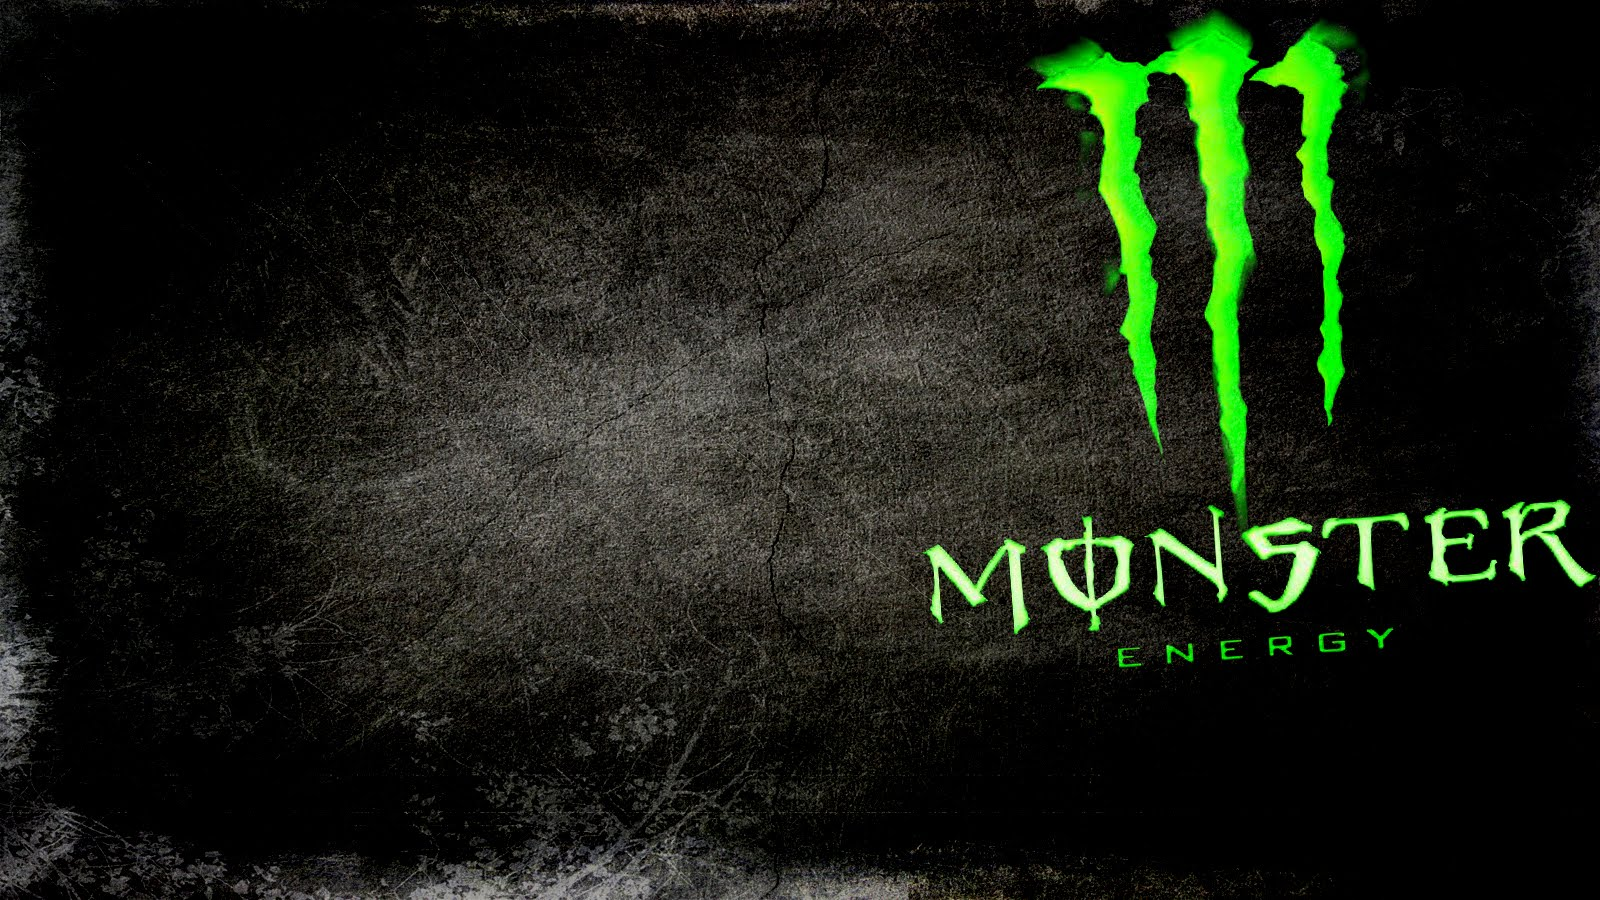 Blue Monster Energy Drink Wallpaper   Wallpapers And Pictures 1600x900